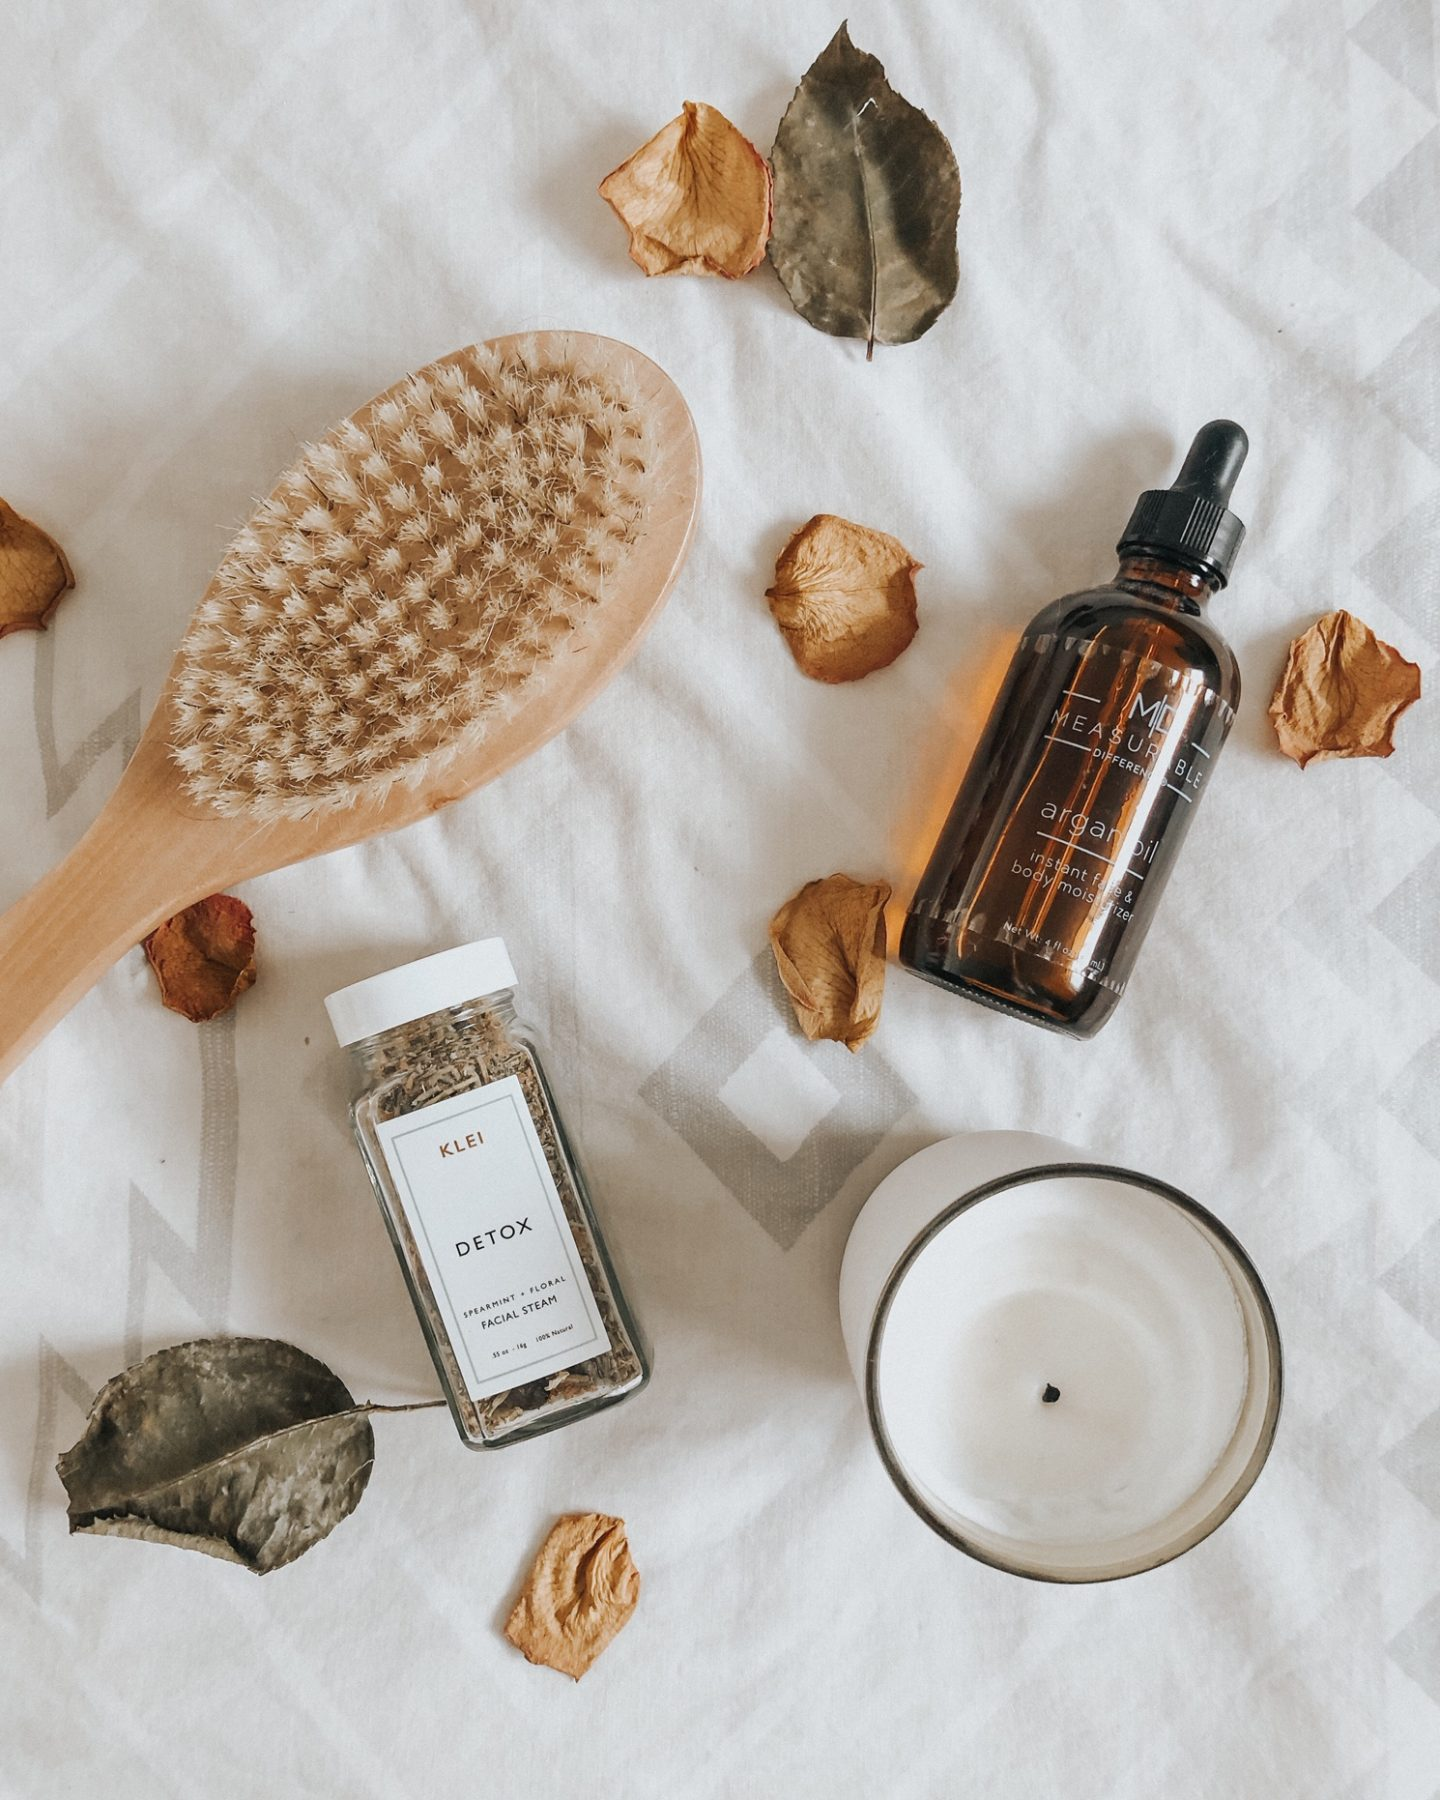 5 ways you can go non-toxic this year